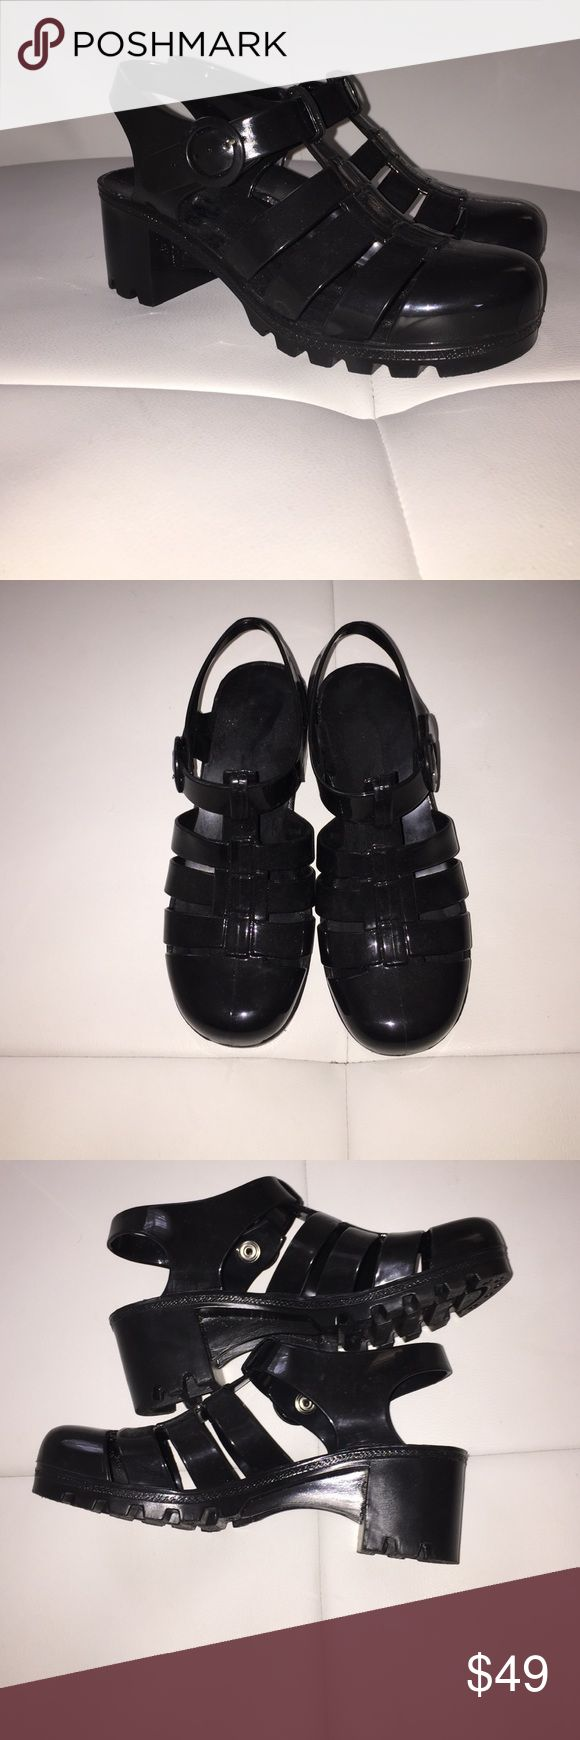 Black jelly sandals american apparel - American Apparel Aa Black Jelly Shoes Size 7 These Shoes Have Only Been Worn One Time